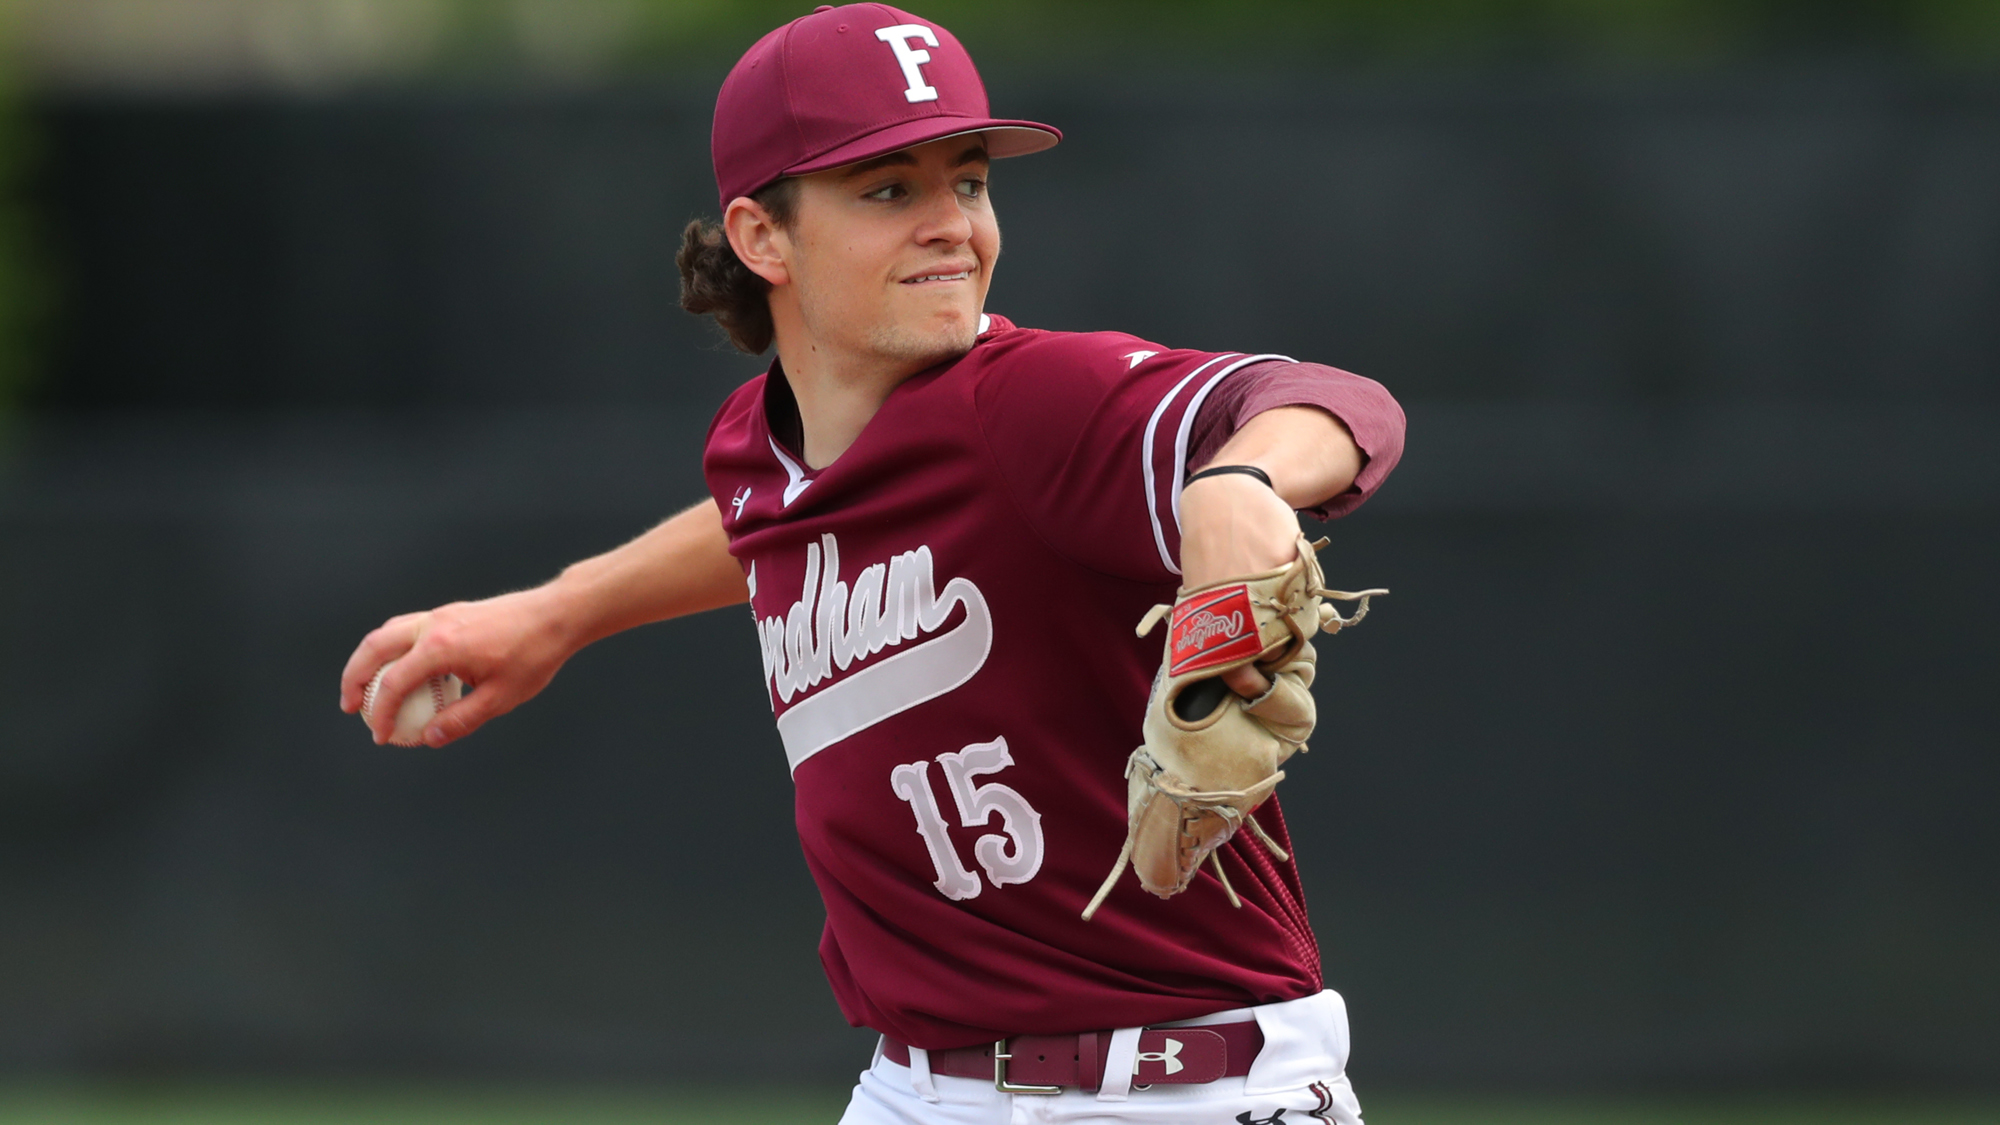 Gabe Karslo throws a pitch vs. UMass